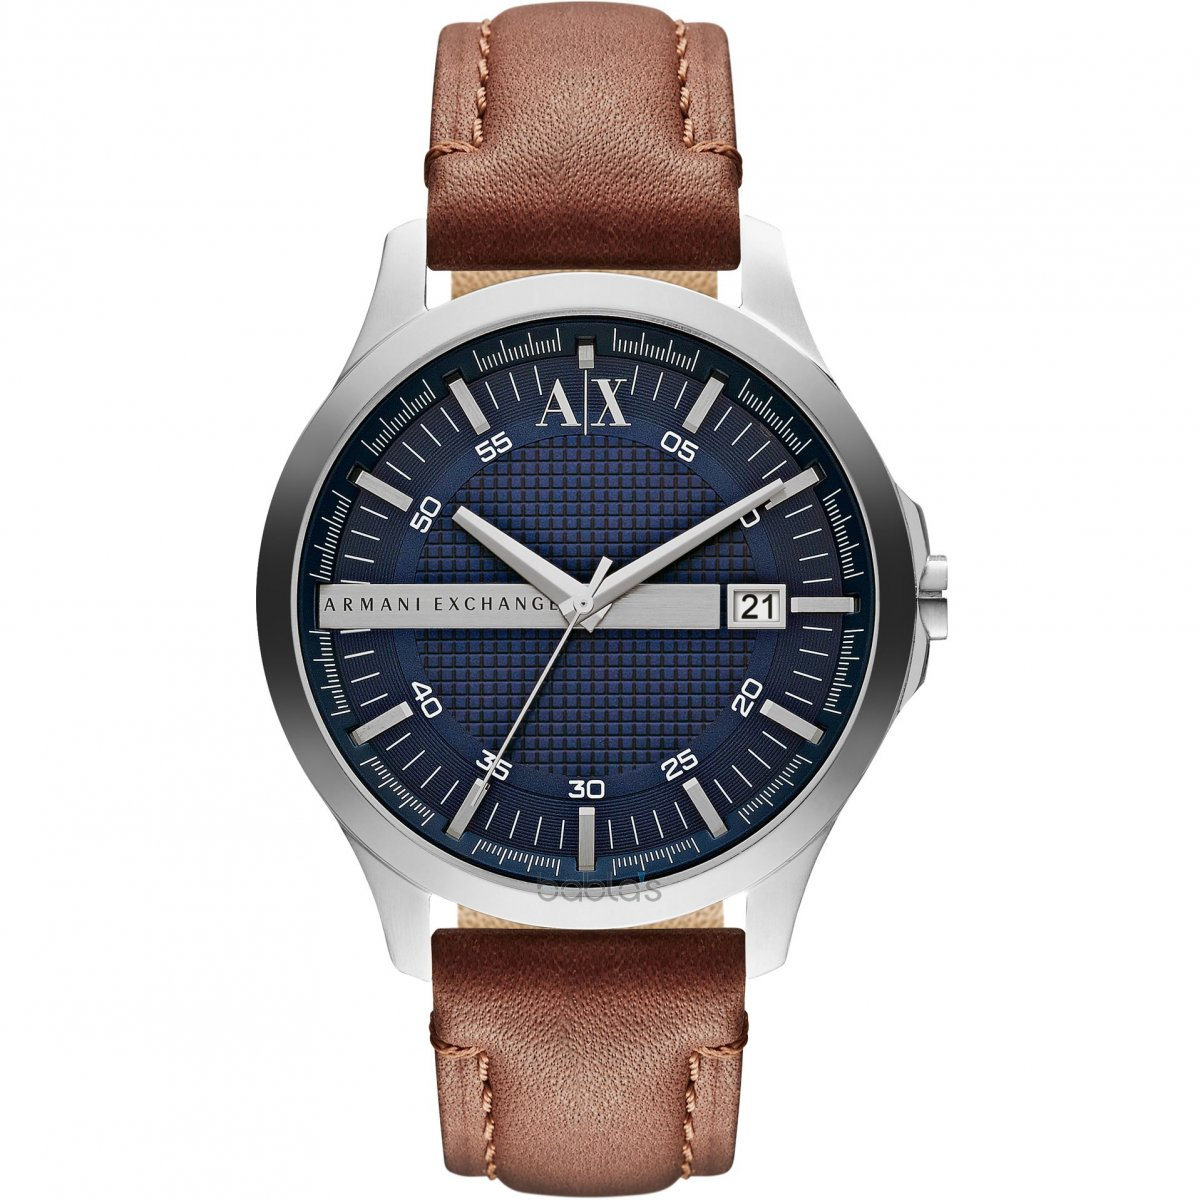 Hodinky ARMANI EXCHANGE Navy Dial Brown Leather Men's Watch